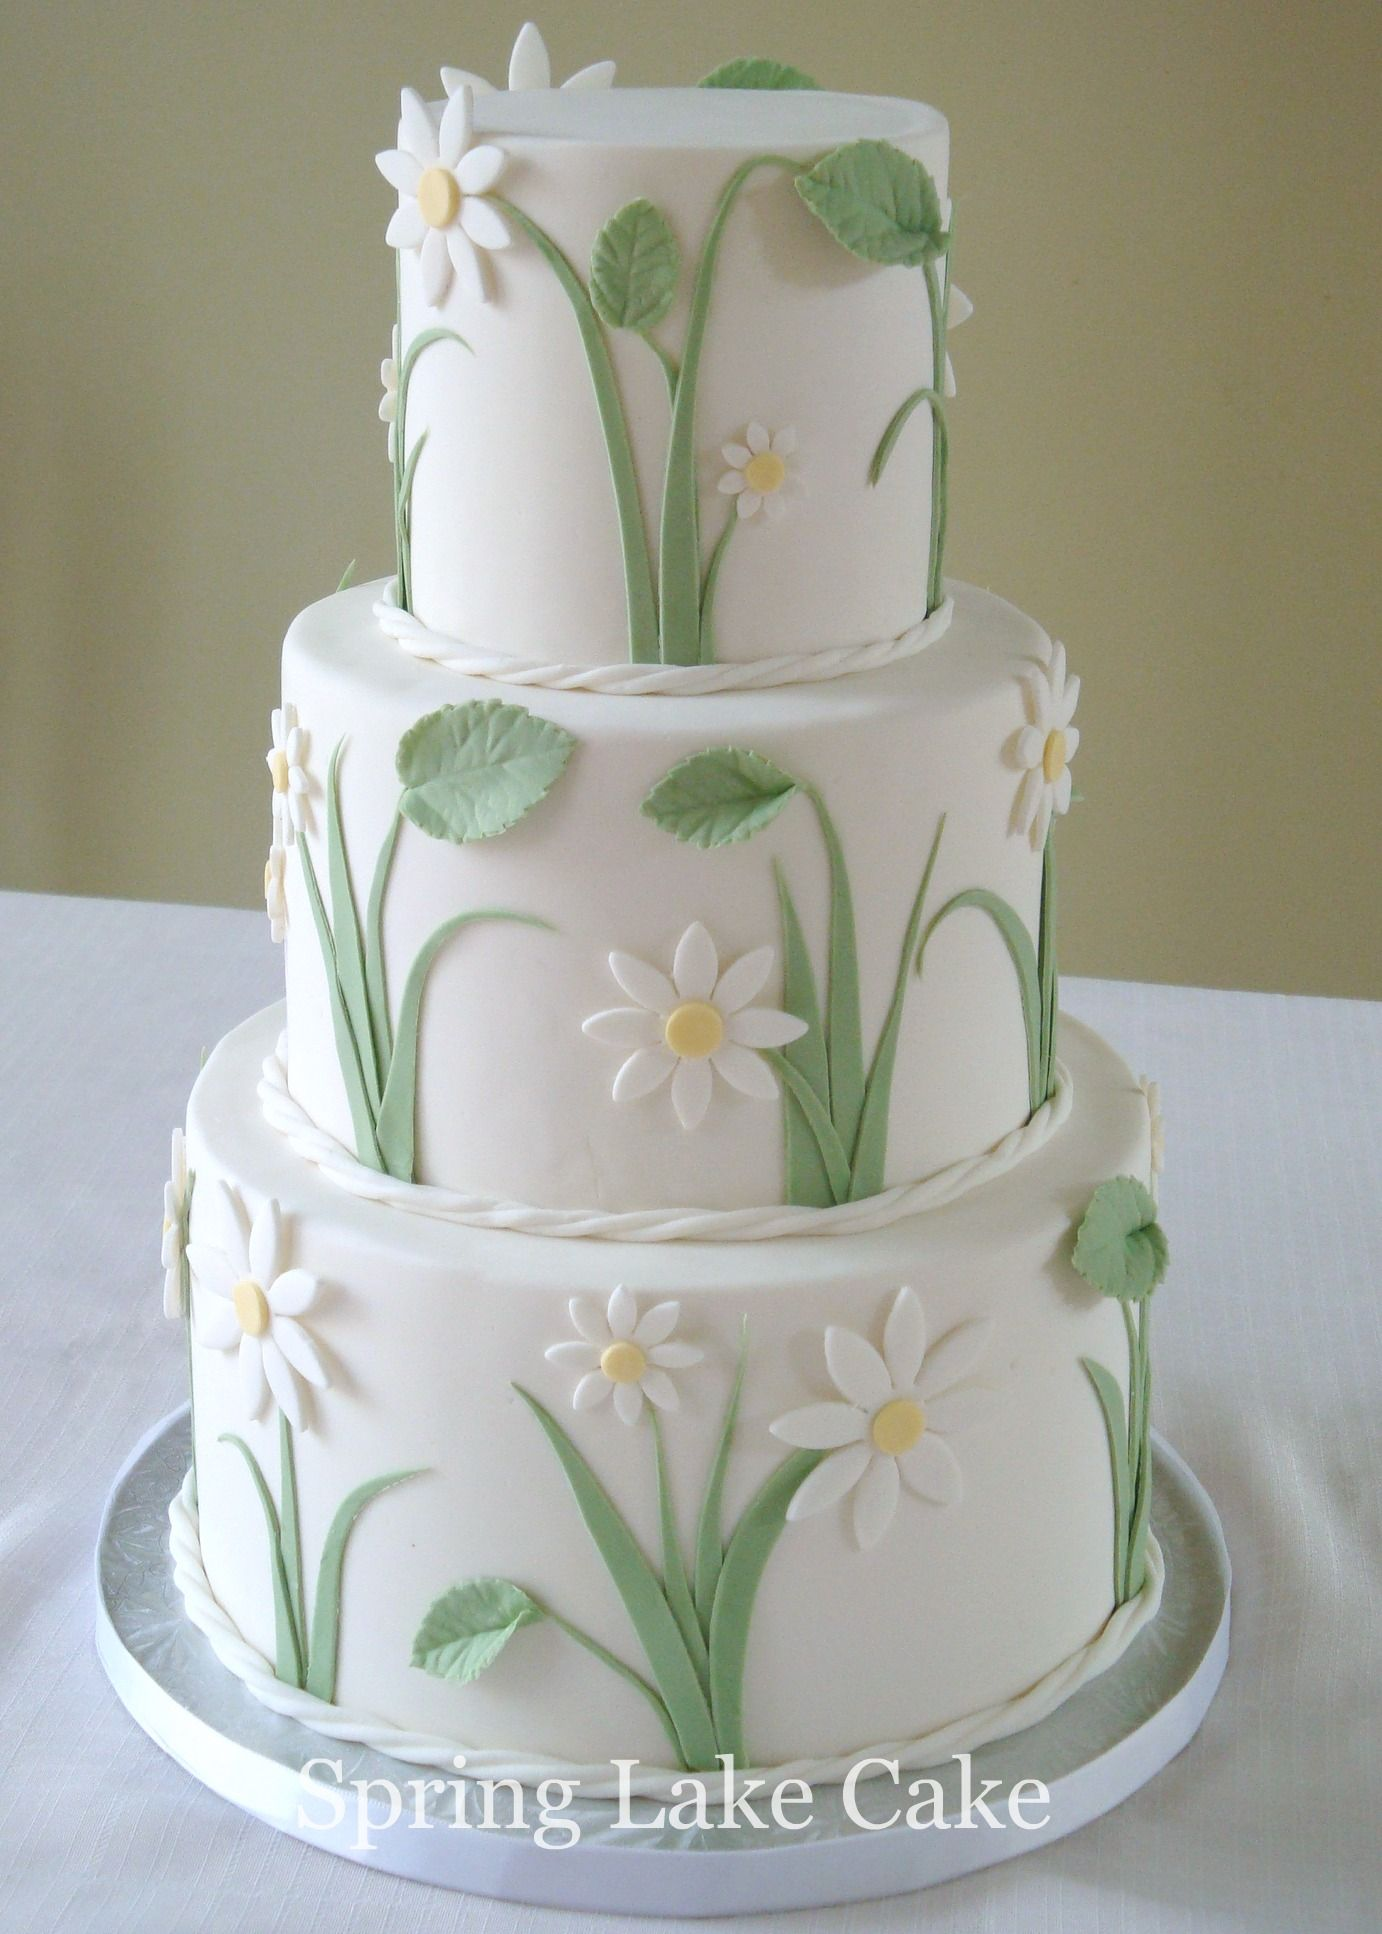 wedding cakes with daisy decorations wedding cake a small wedding cake 4 6 8 inch 26016